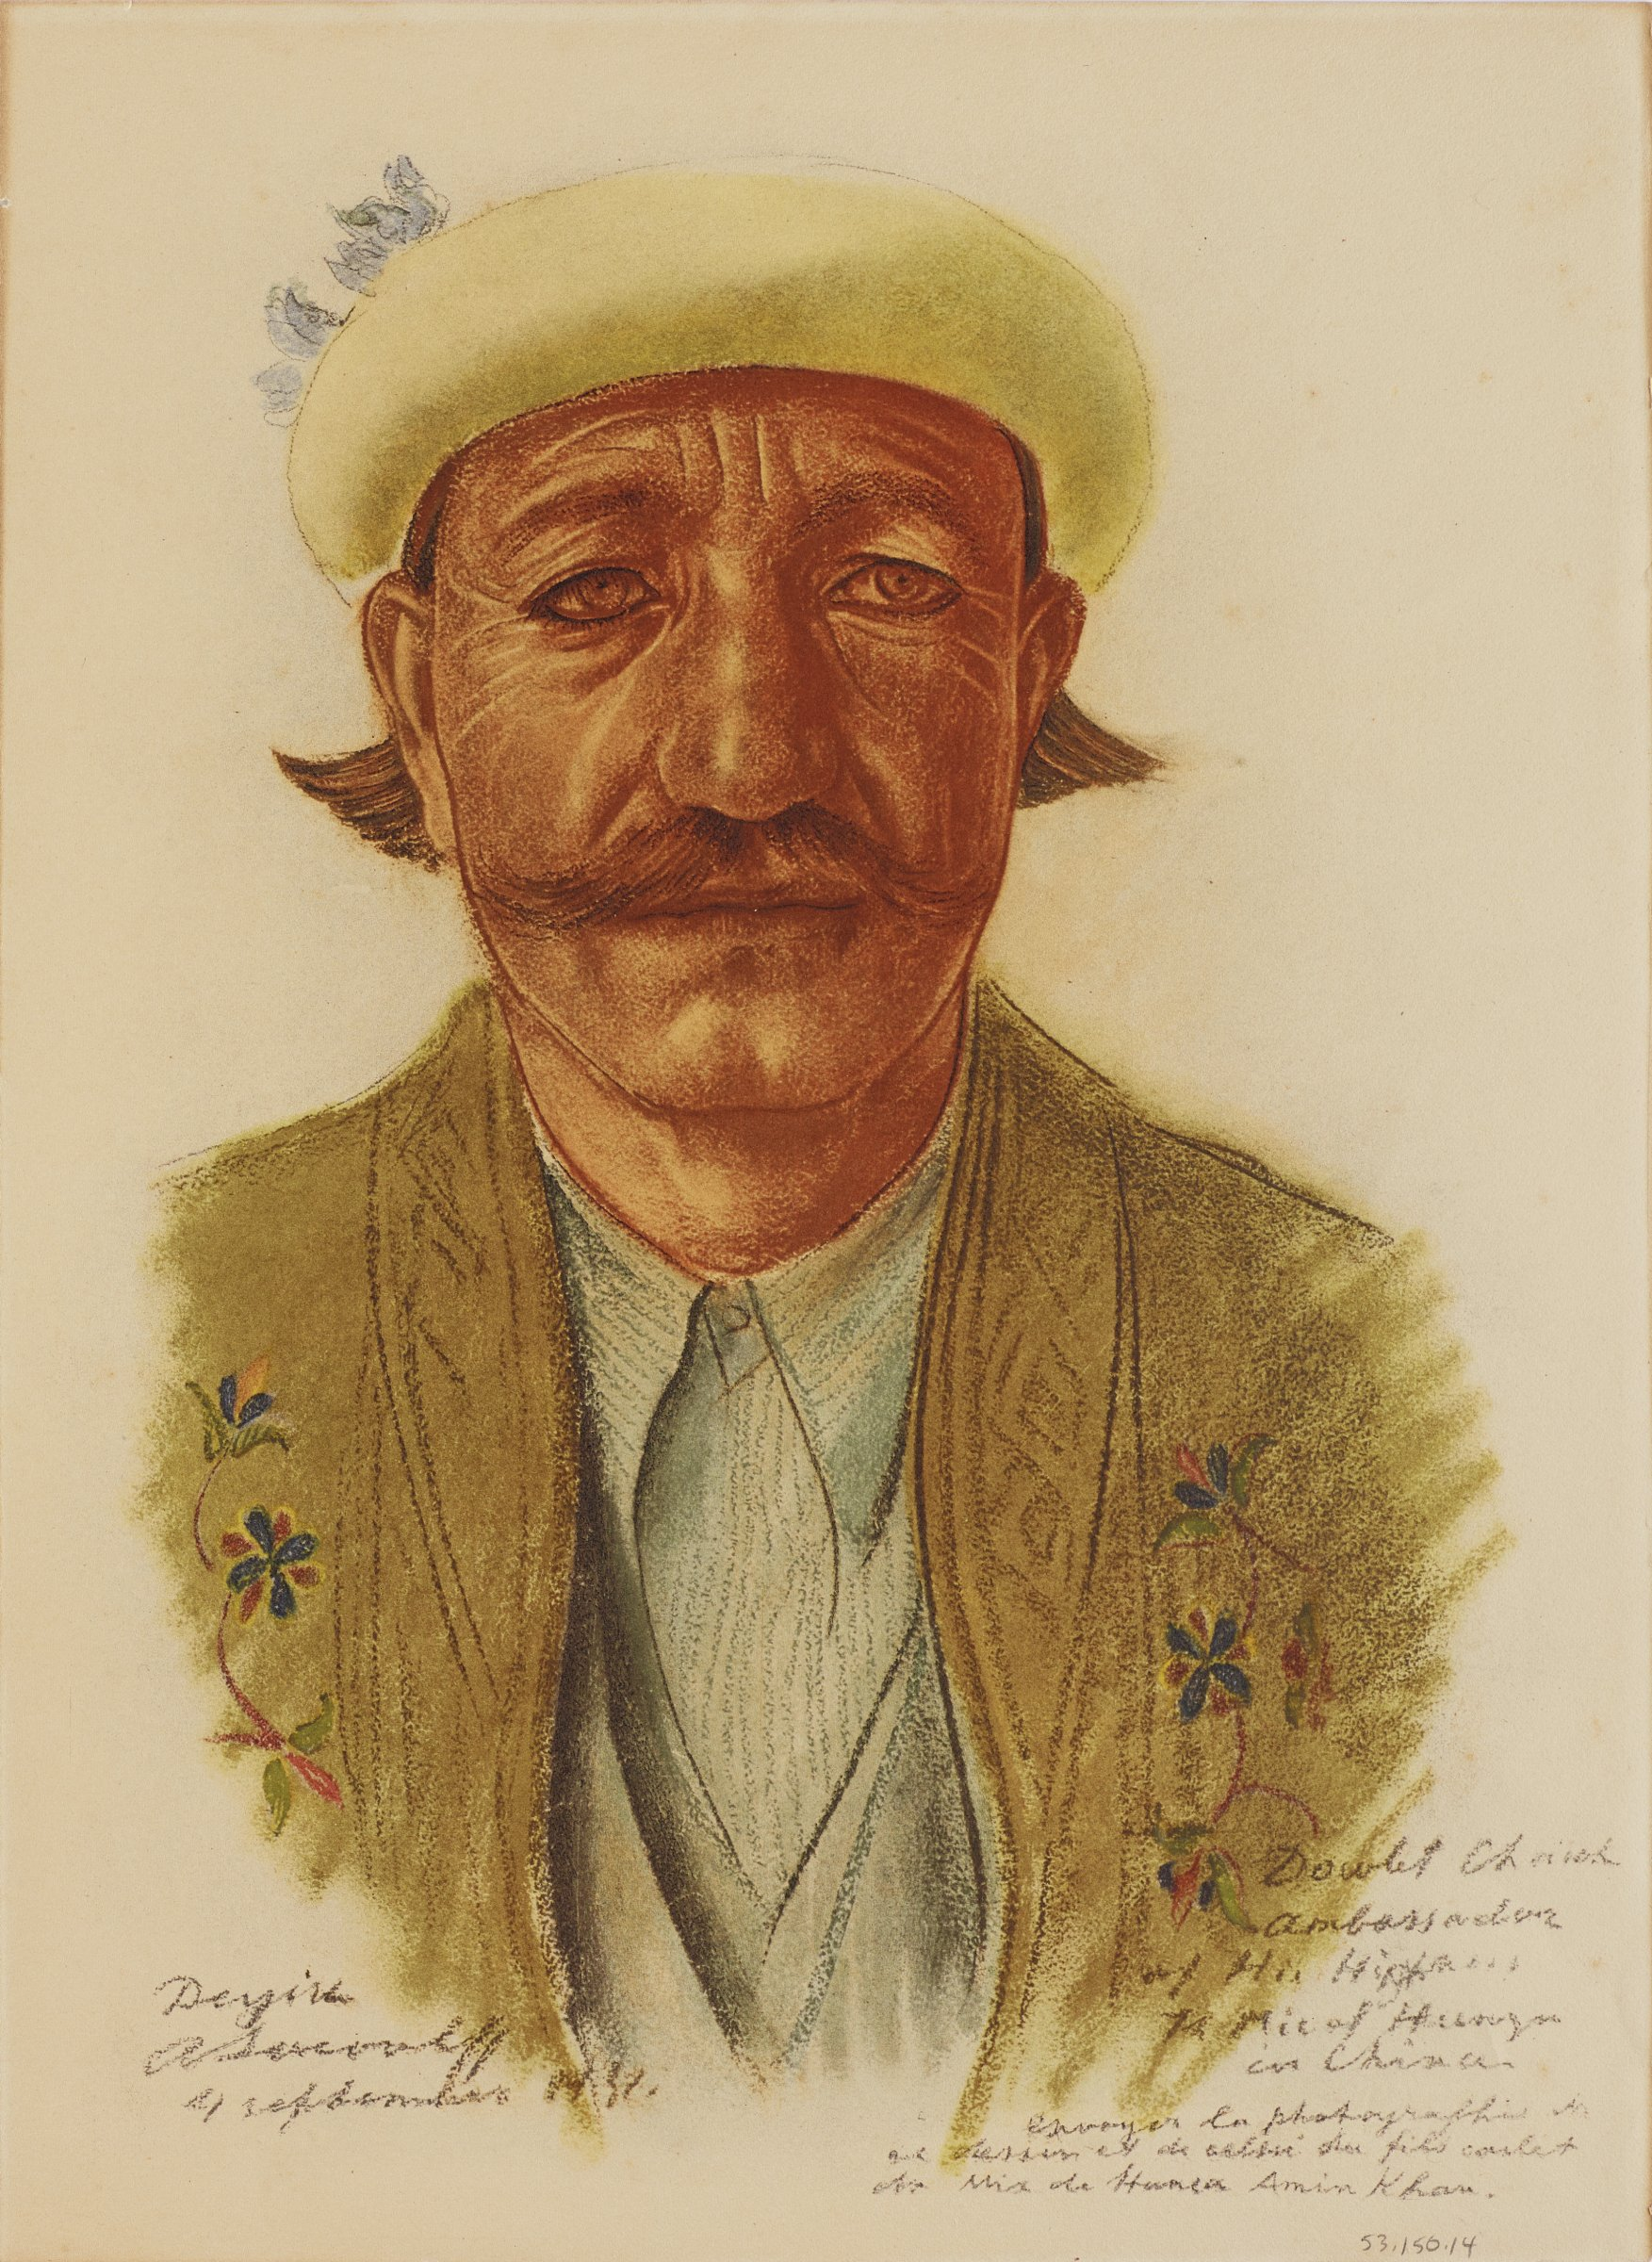 Bust portrait of a male figure with a yellow hat and yellow jacket with floral decorations. His body faces forward as he looks slightly to the right. This series is a product of Jacovleff's involvement in the Expédition Citroën Centre-Asie.